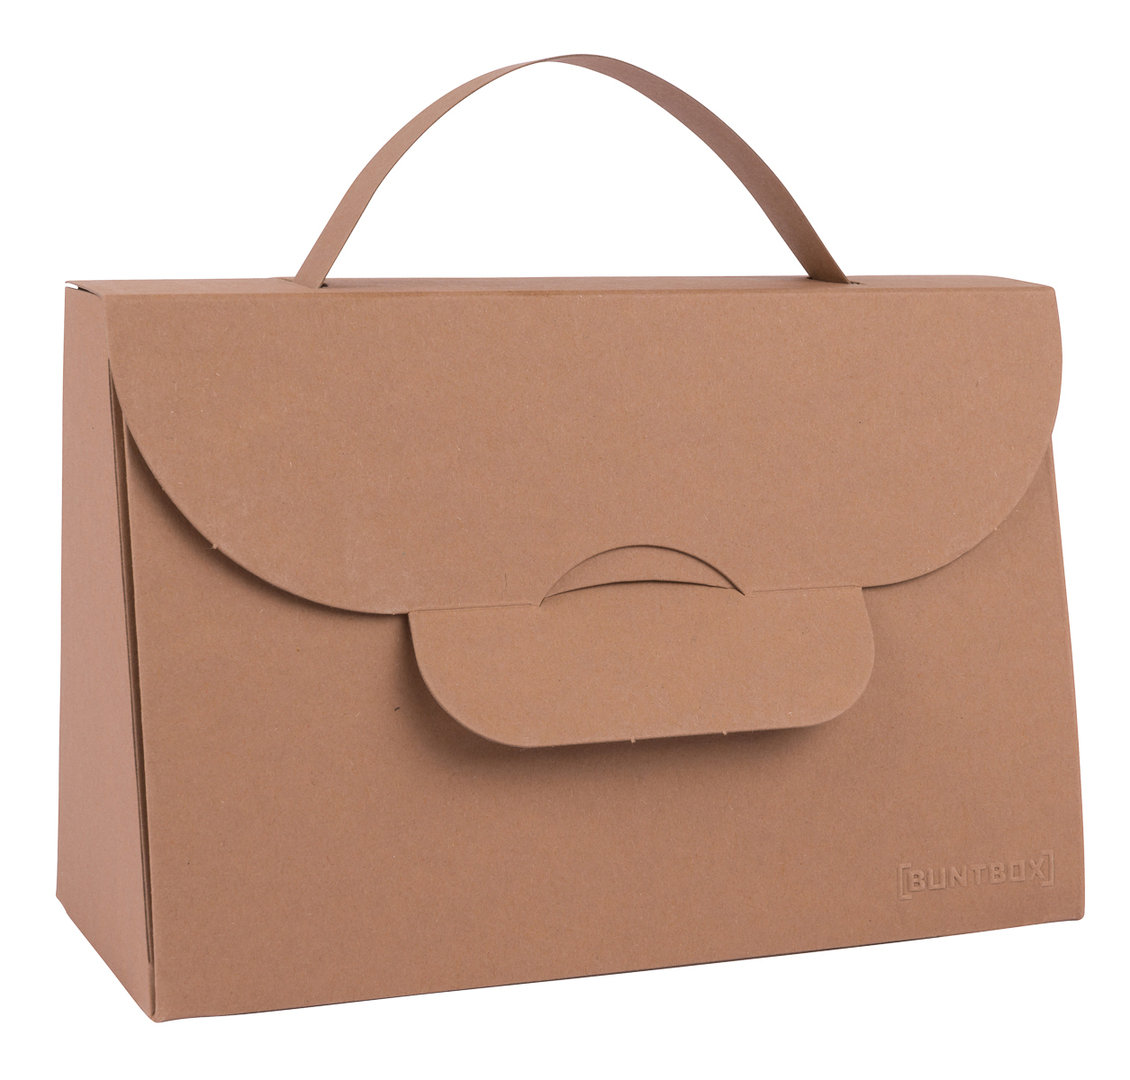 BUNTBOX Handbag M - Tobacco